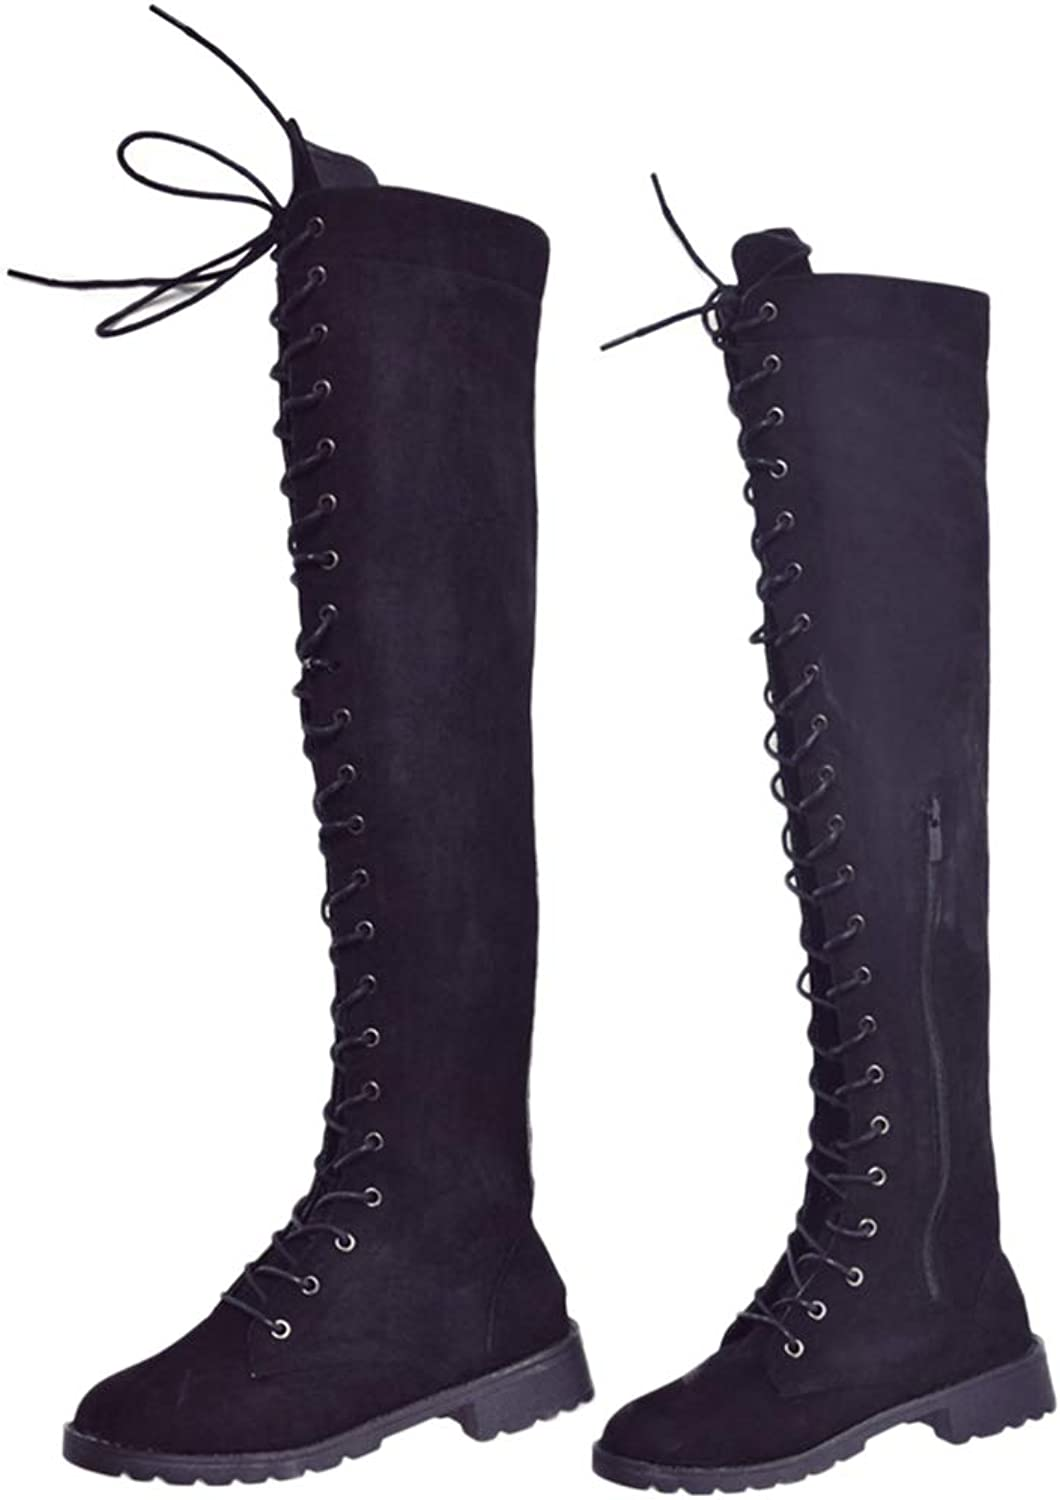 Zoylink Thigh High Boots Fashion Strappy Zipper Over The Knee Boots for Women